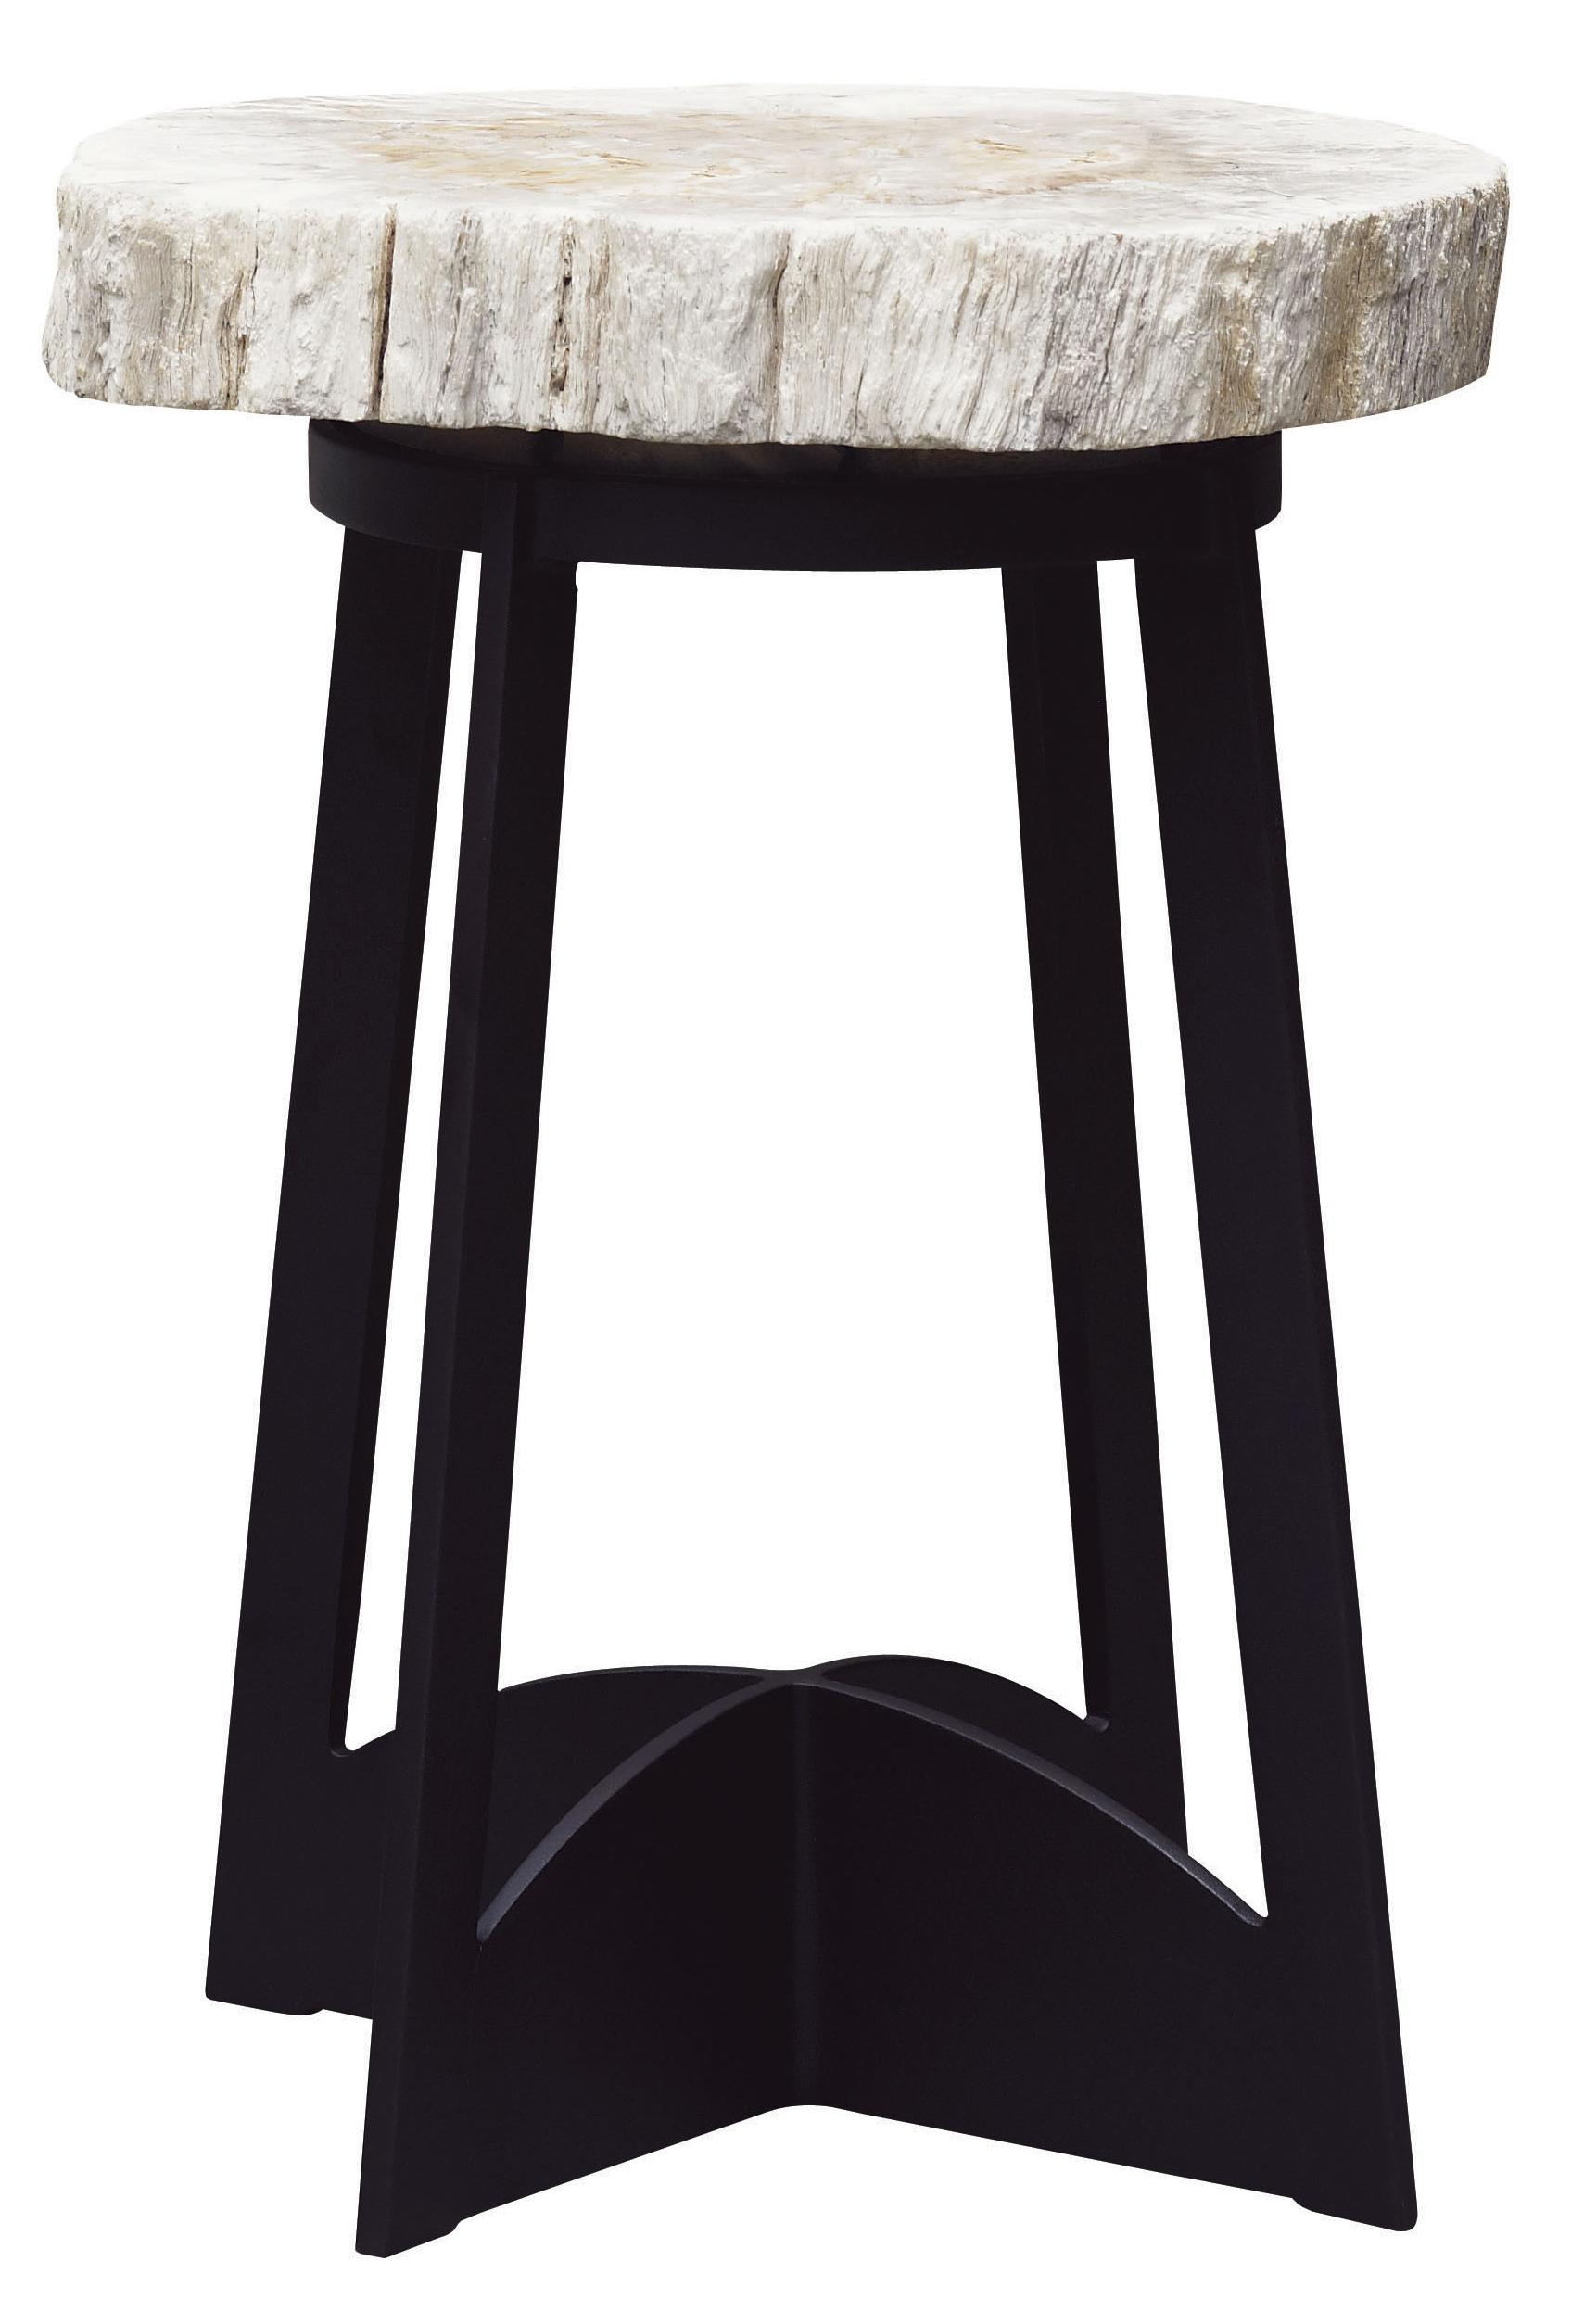 Alfresco Living Petrified Wood End Table by Tommy Bahama Outdoor Living at Baer's Furniture